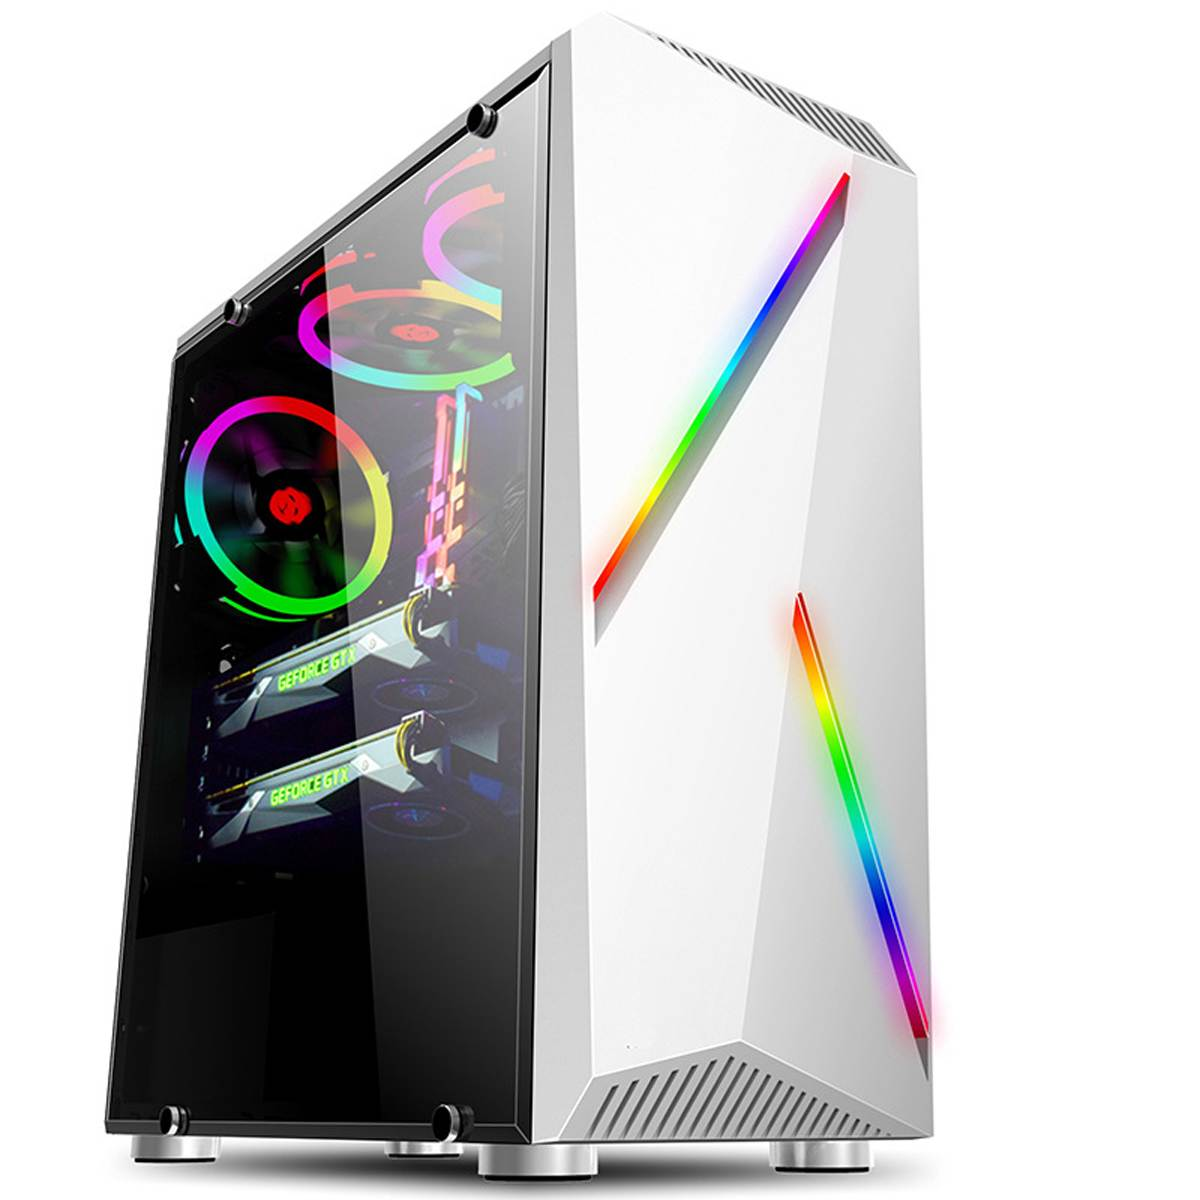 Micro Computer PC Case Gaming ATX Audio Transparente With 2 RGB Color Changing Light Strips 350X170X420mm